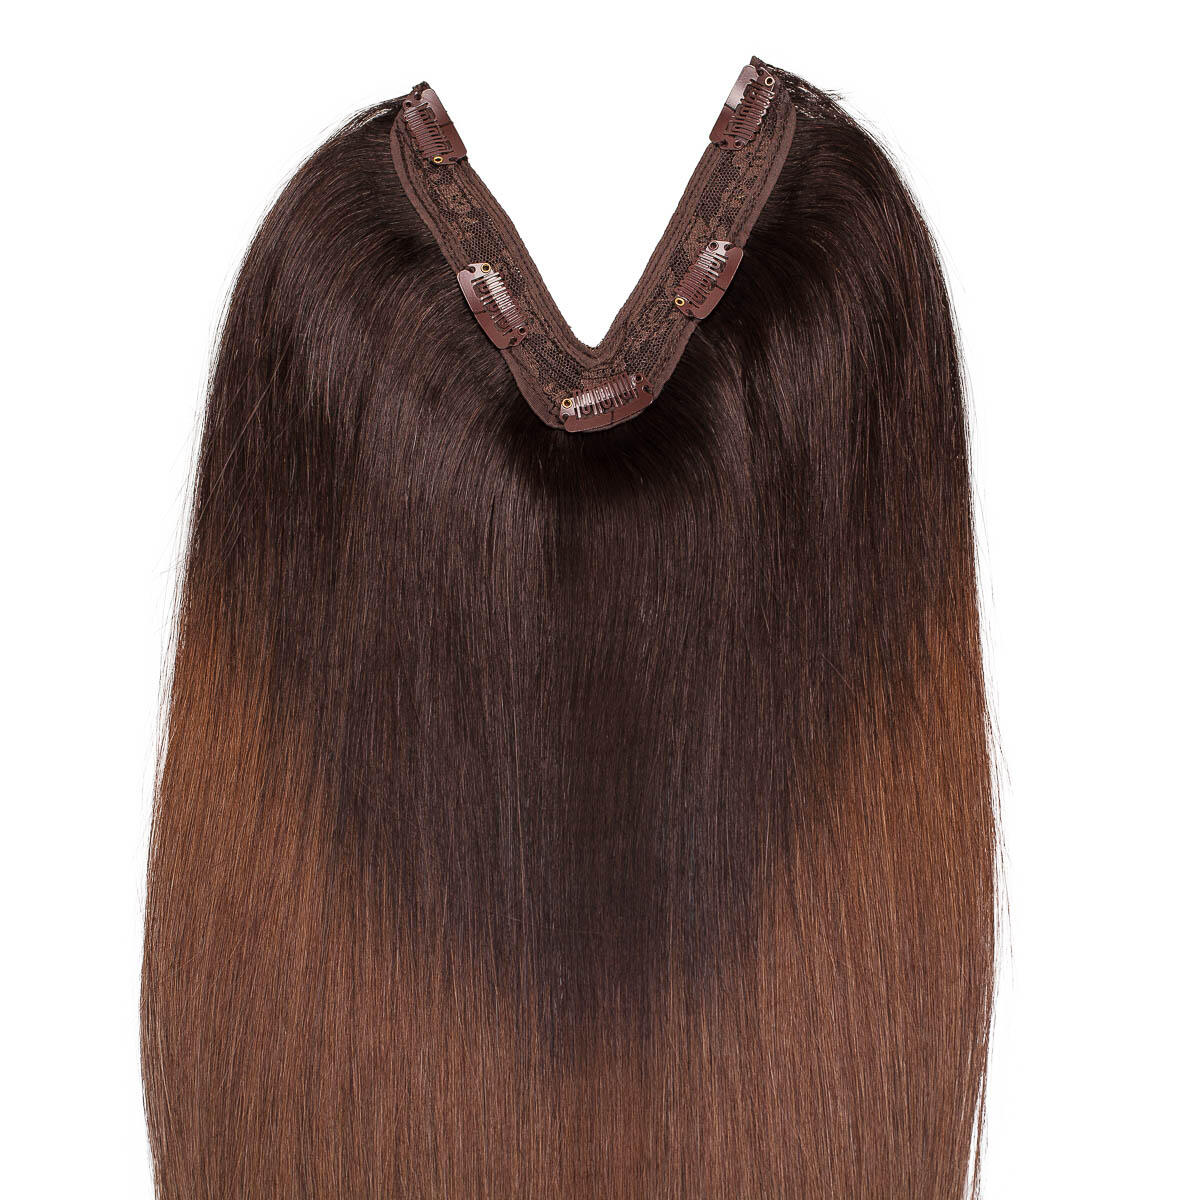 Easy Clip-in O2.3/5.0 Chocolate Brown Ombre 50 cm